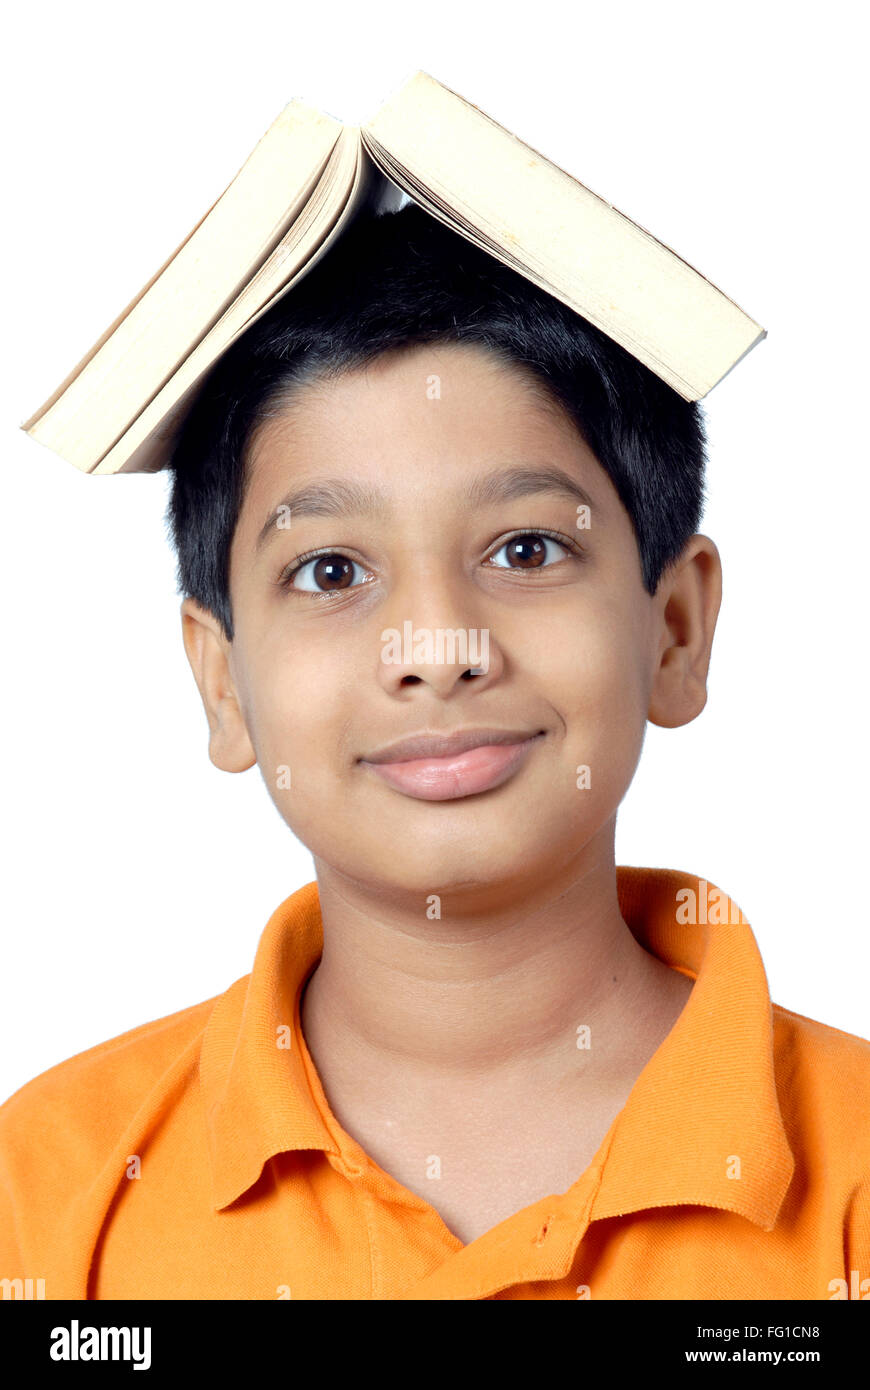 Young boy kept book on head showing burden MR#152 - Stock Image